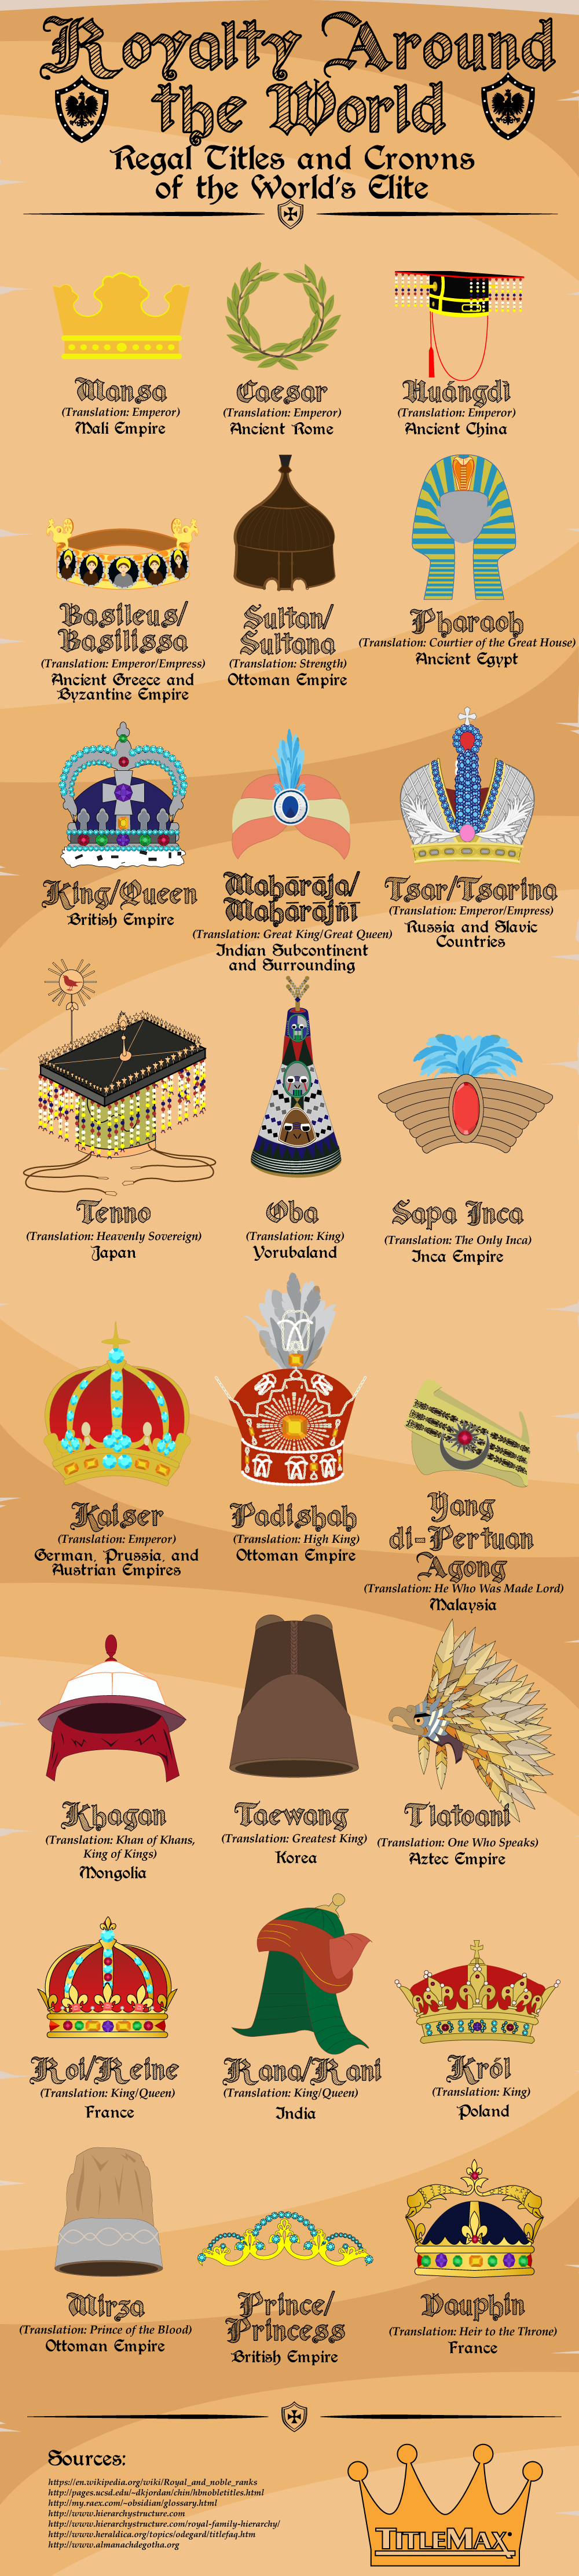 Regal Titles Through the Ages and Around the World - Infographic